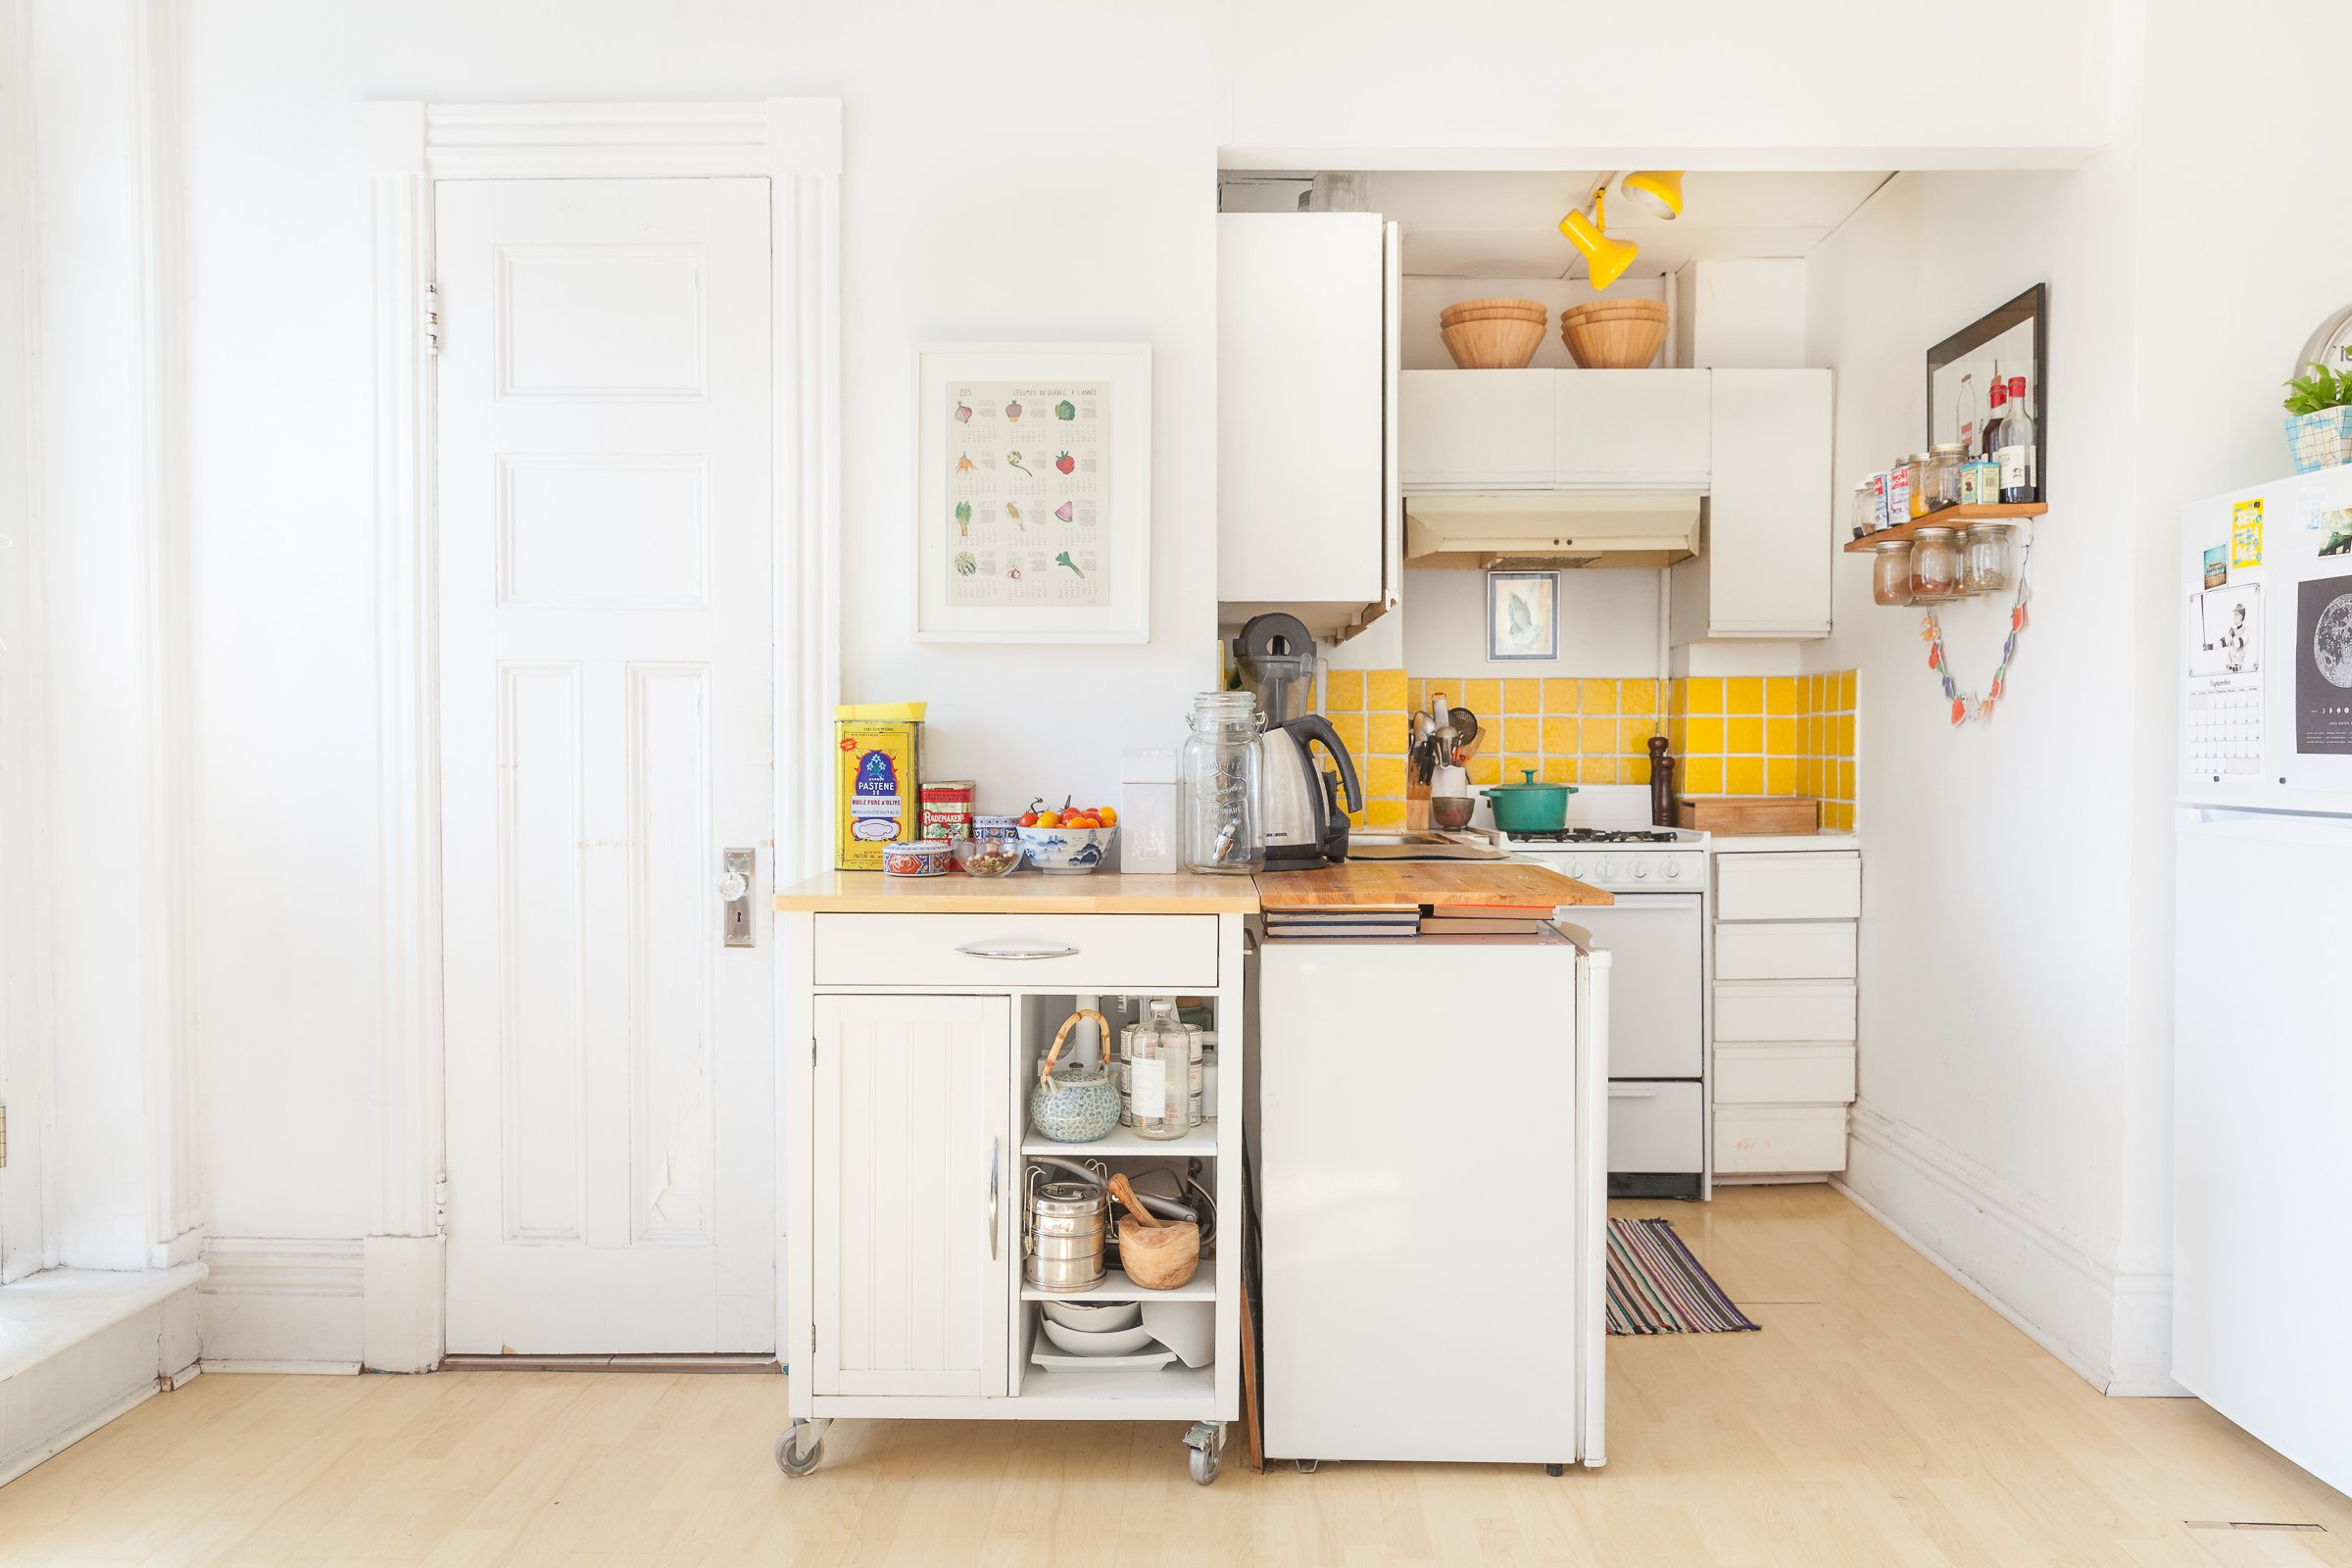 Space Saving Wardrobe Ideas The 21 Best Small Kitchen Ideas Of All Time Kitchn